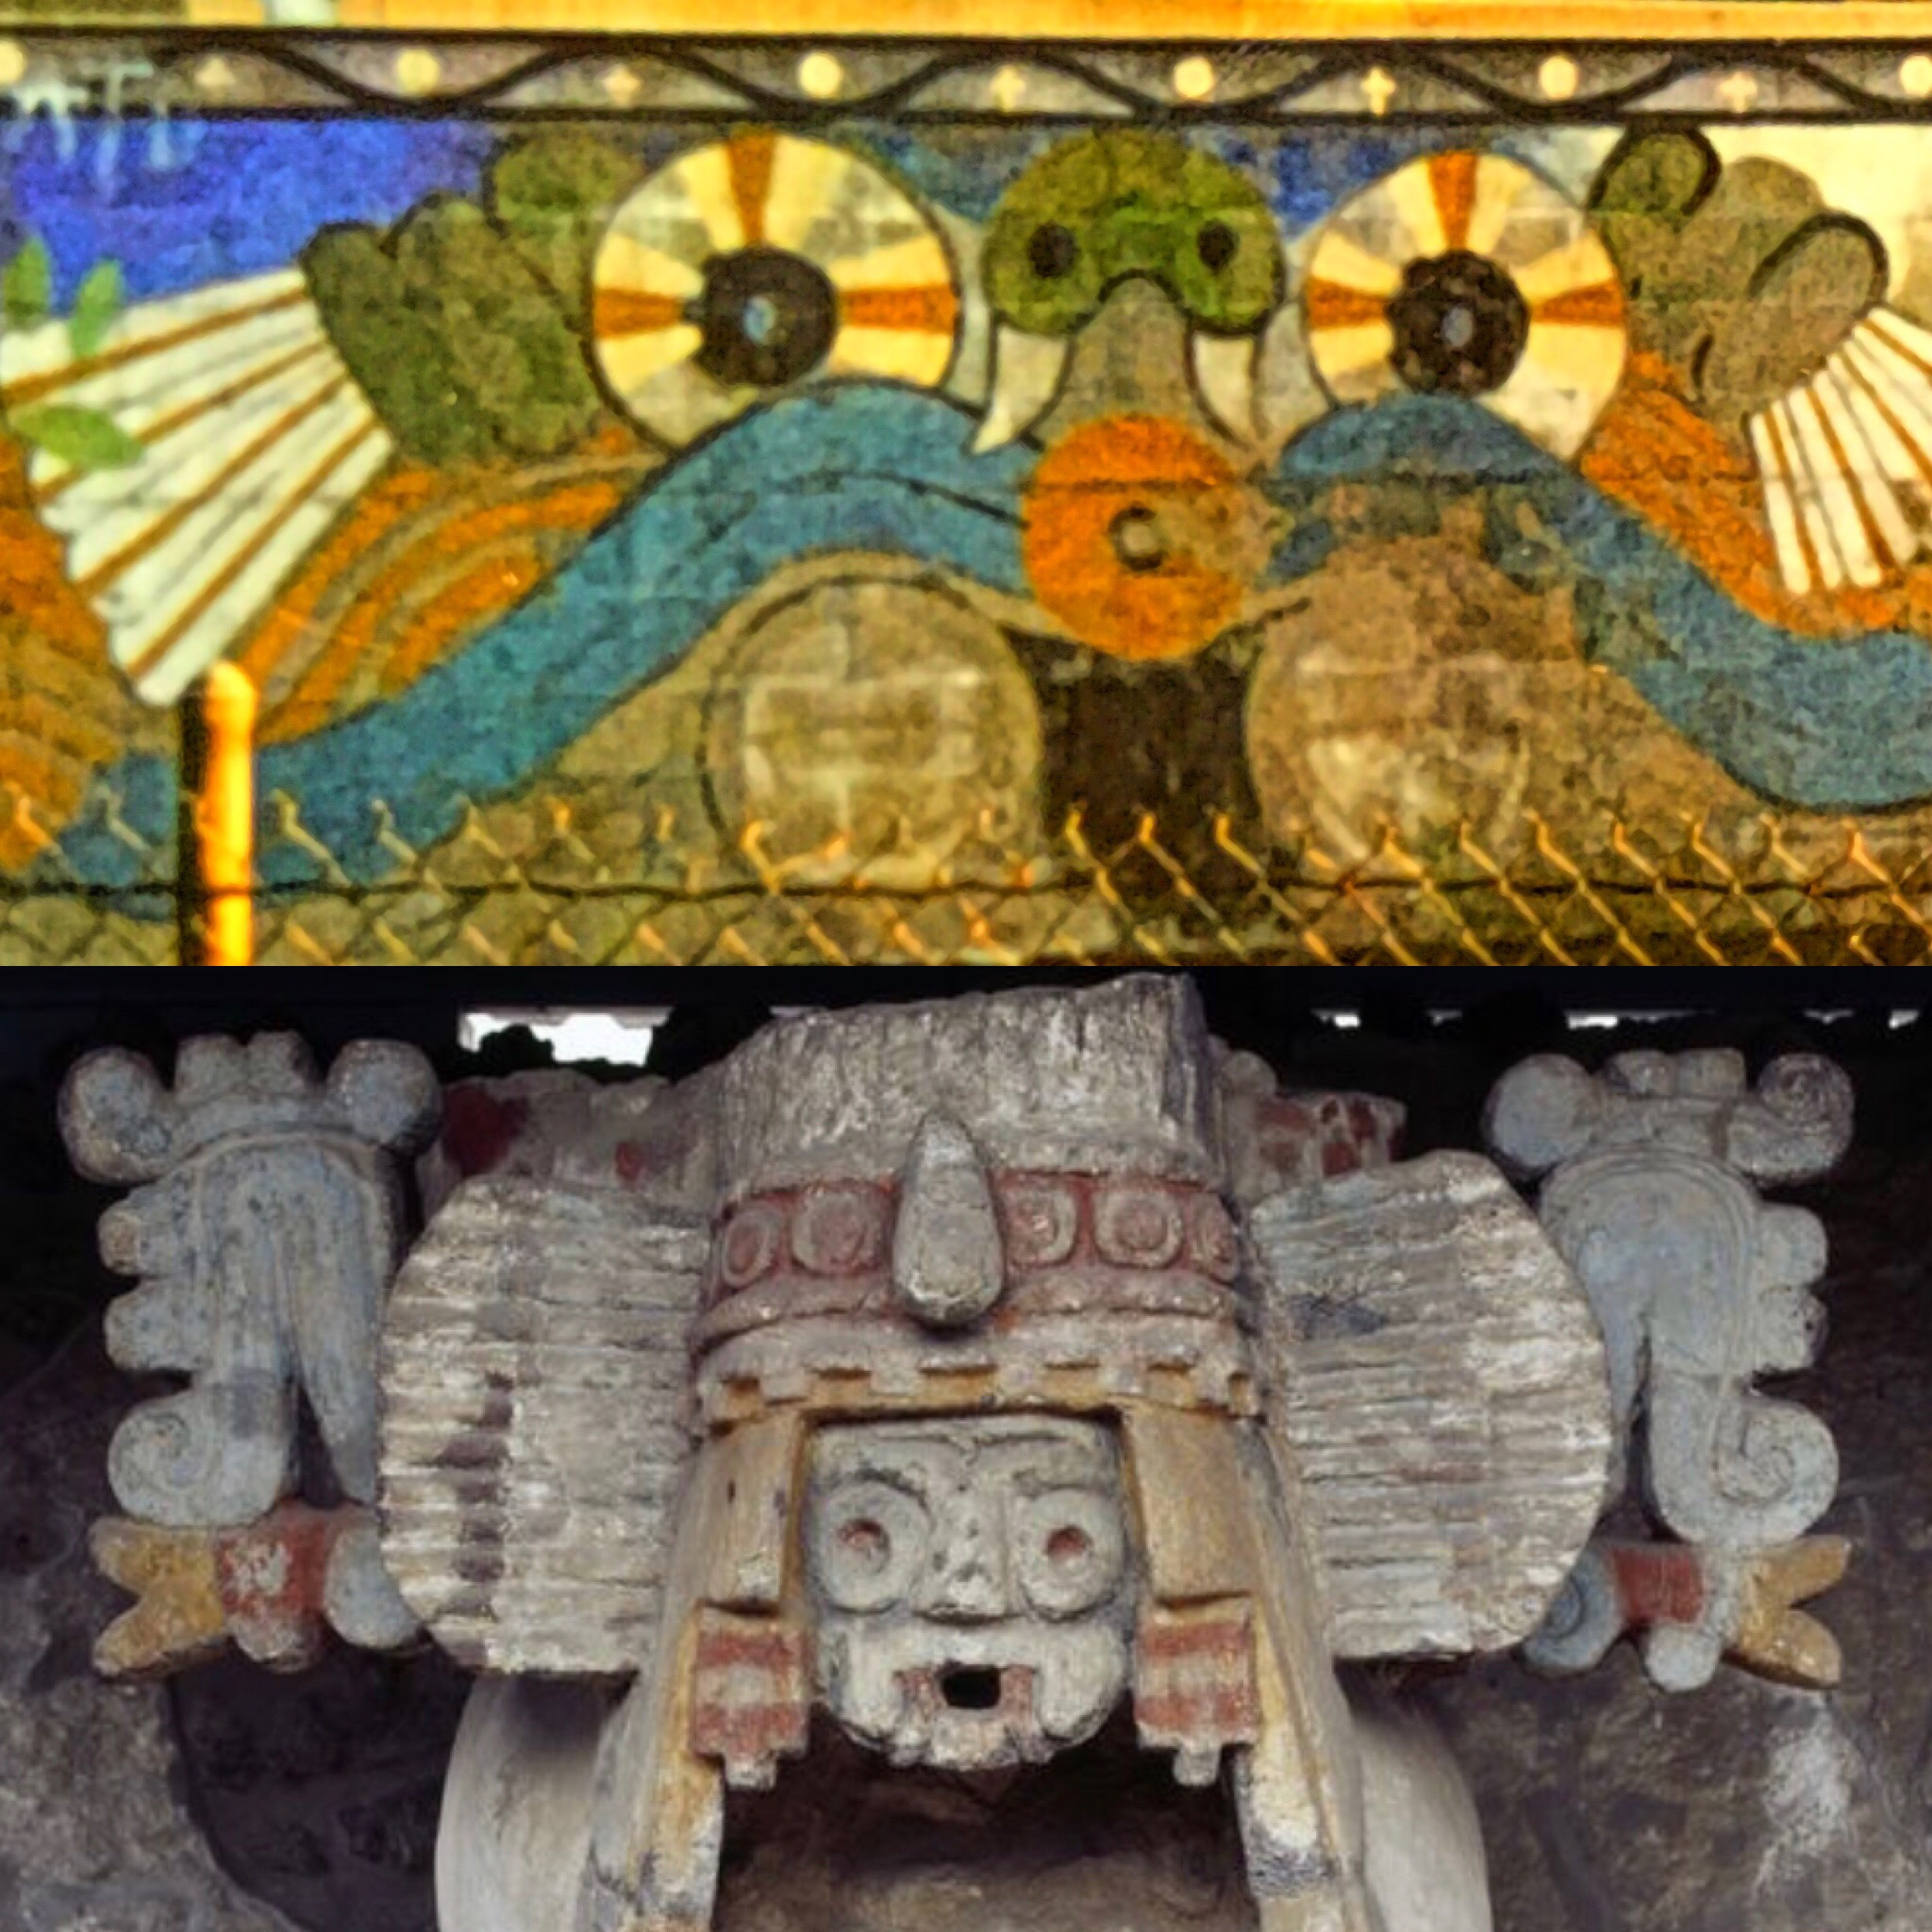 The Aztec God of Rain & Fertility - Tlaloc (Tlá-lock), may have been slightly awoken in the restoration progress this weekend as we had a little bit of rain today! Tlaloc is one of the most recognizable symbols of Aztec mythology that the Atwood Mural has. Manuel created his own vision of Tlaloc in the mural.